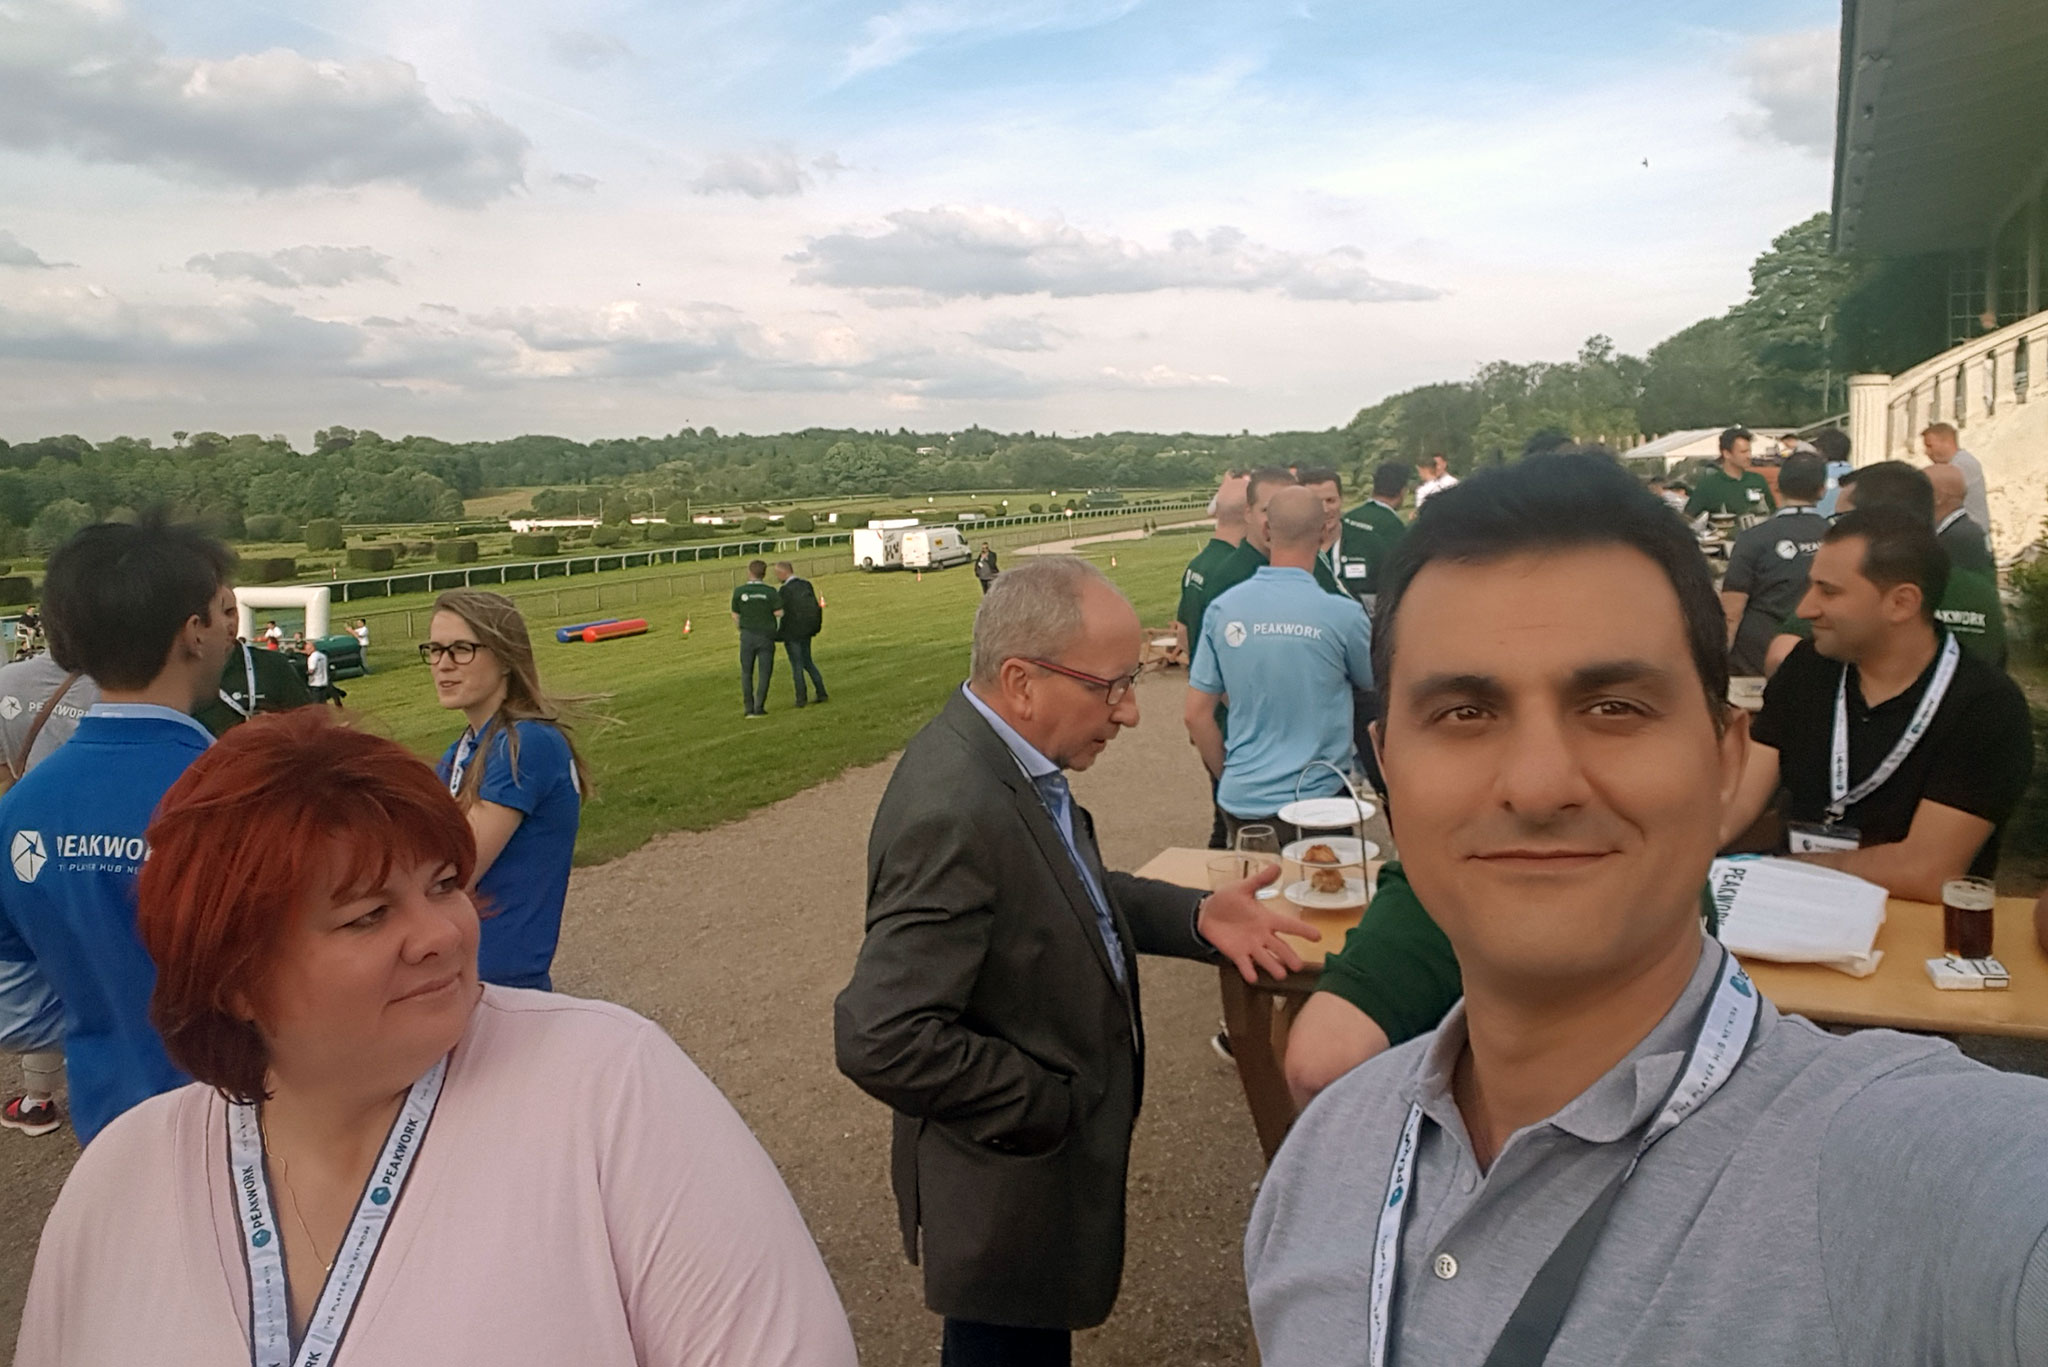 Cyberlogic Attended Peakwork Partner Connect Event 2017